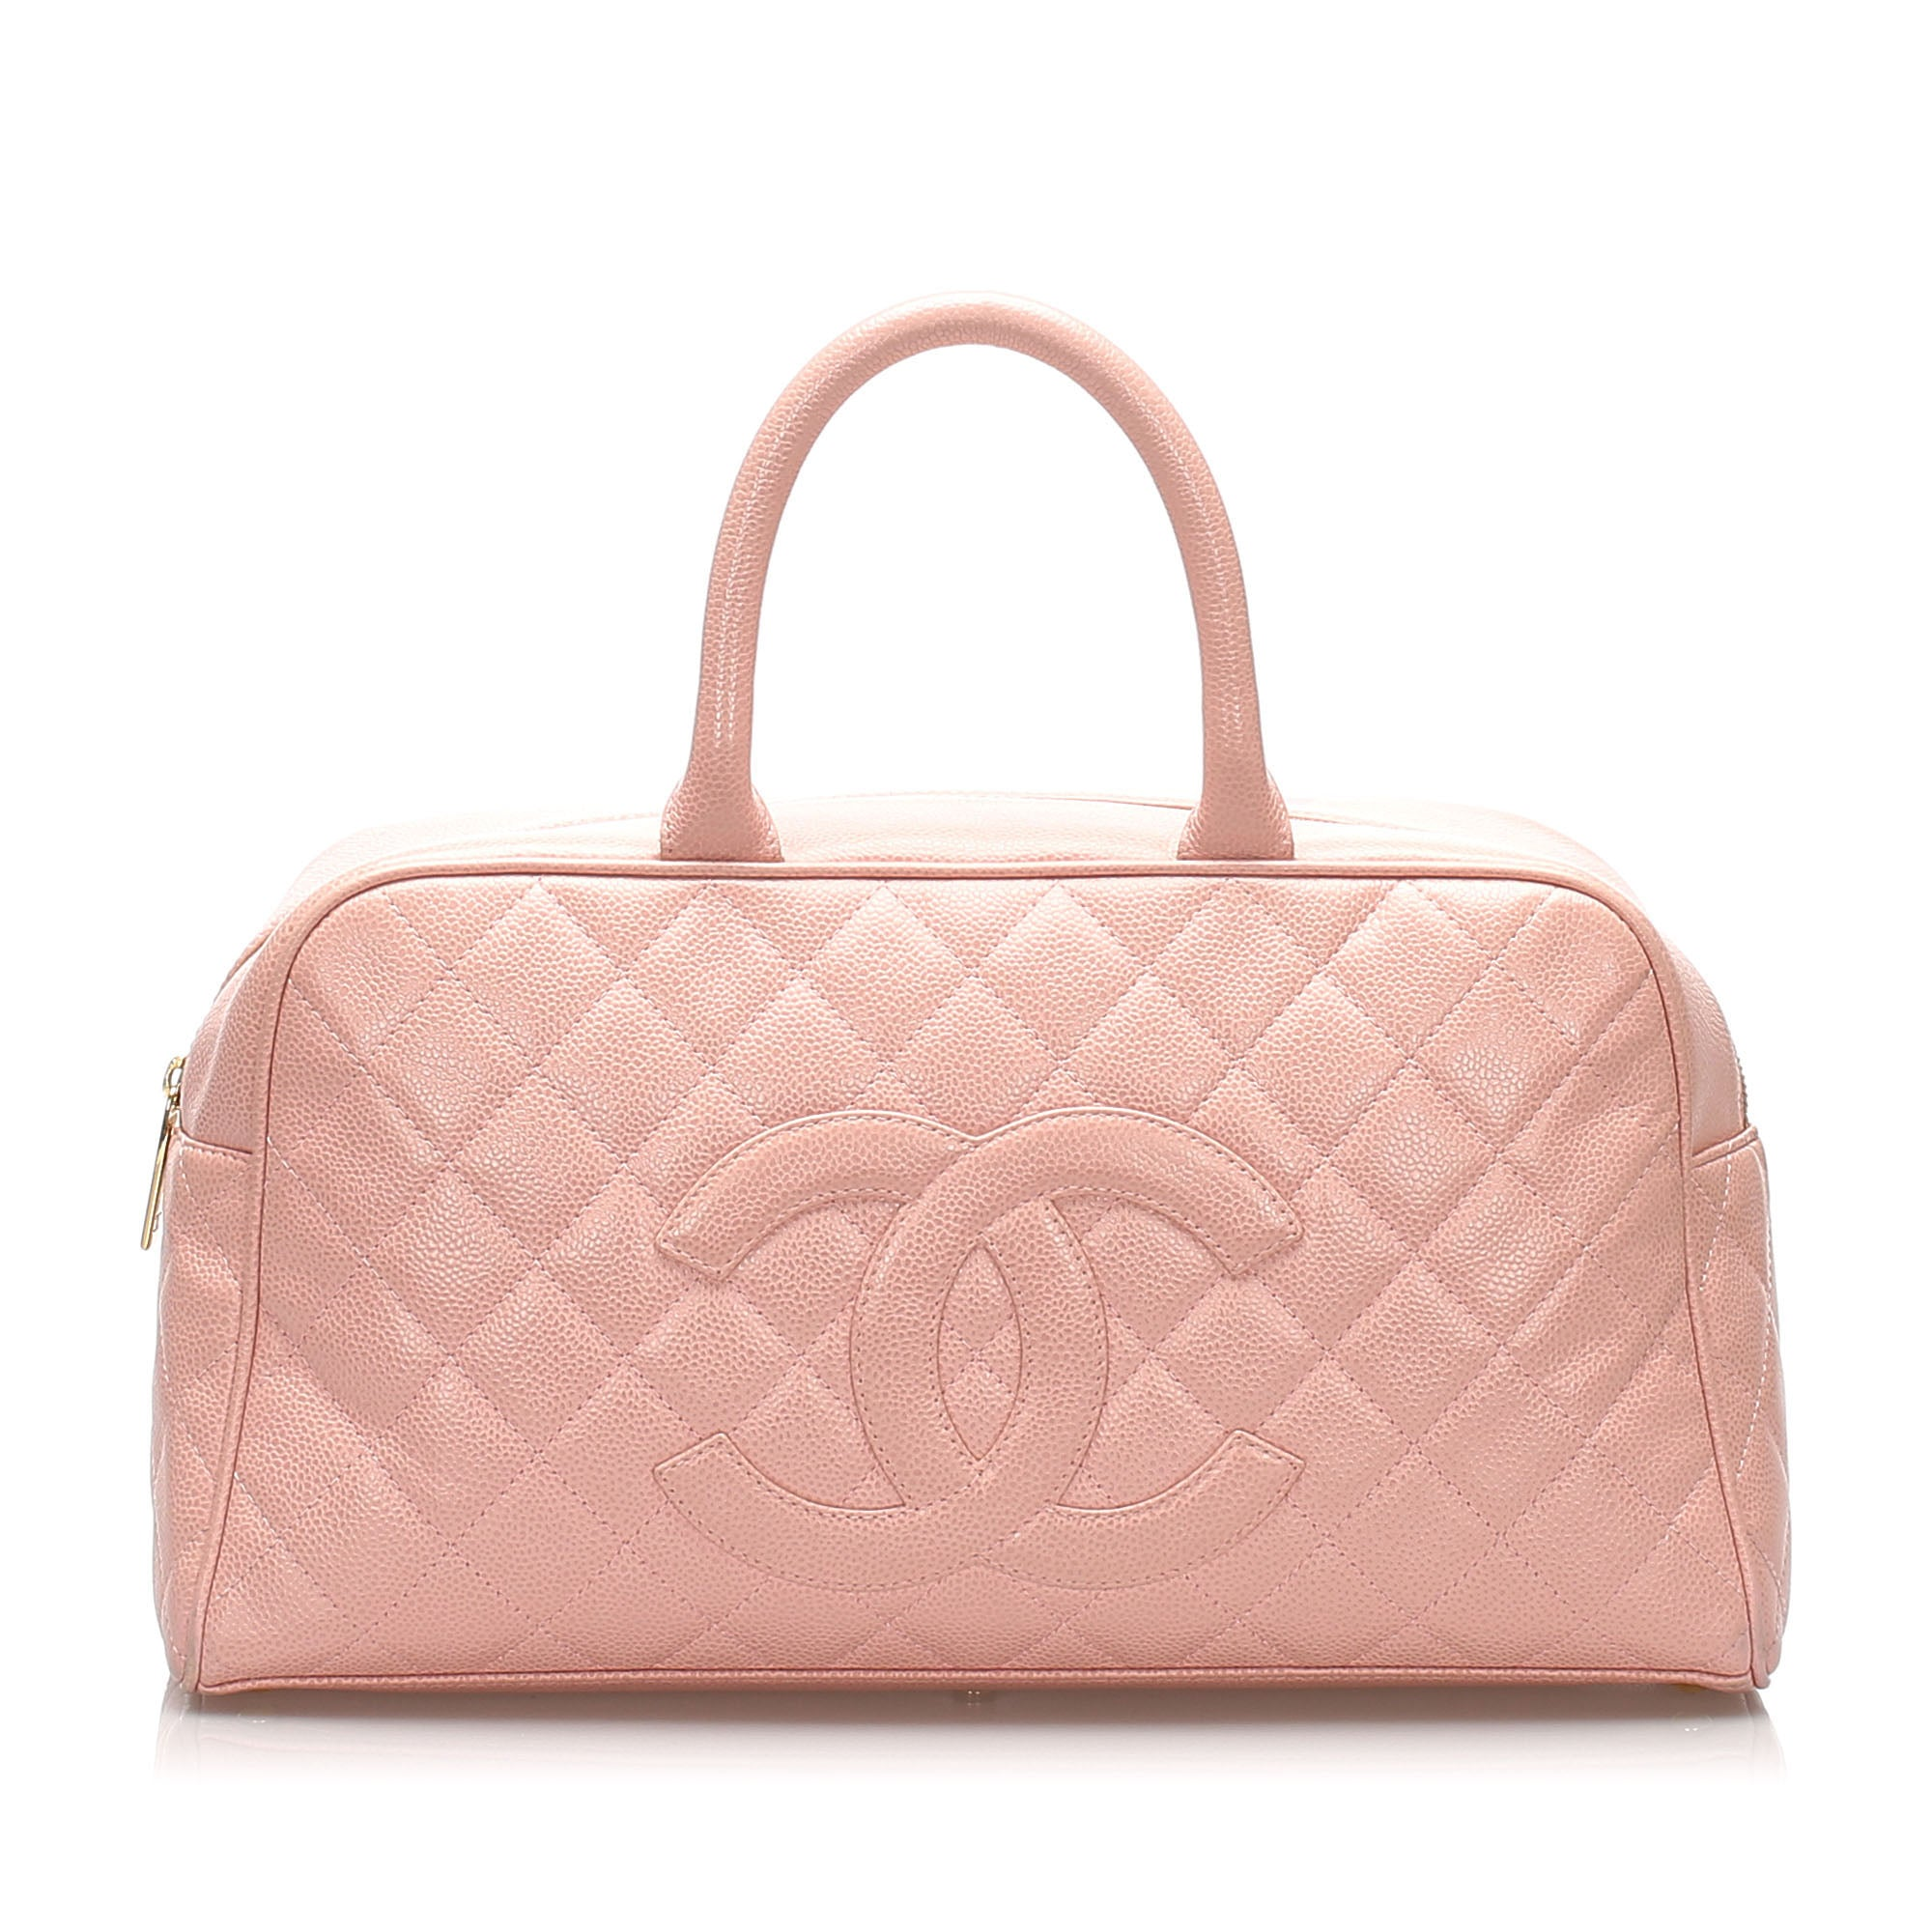 Chanel Pink Matelasse Caviar Leather Boston Bag